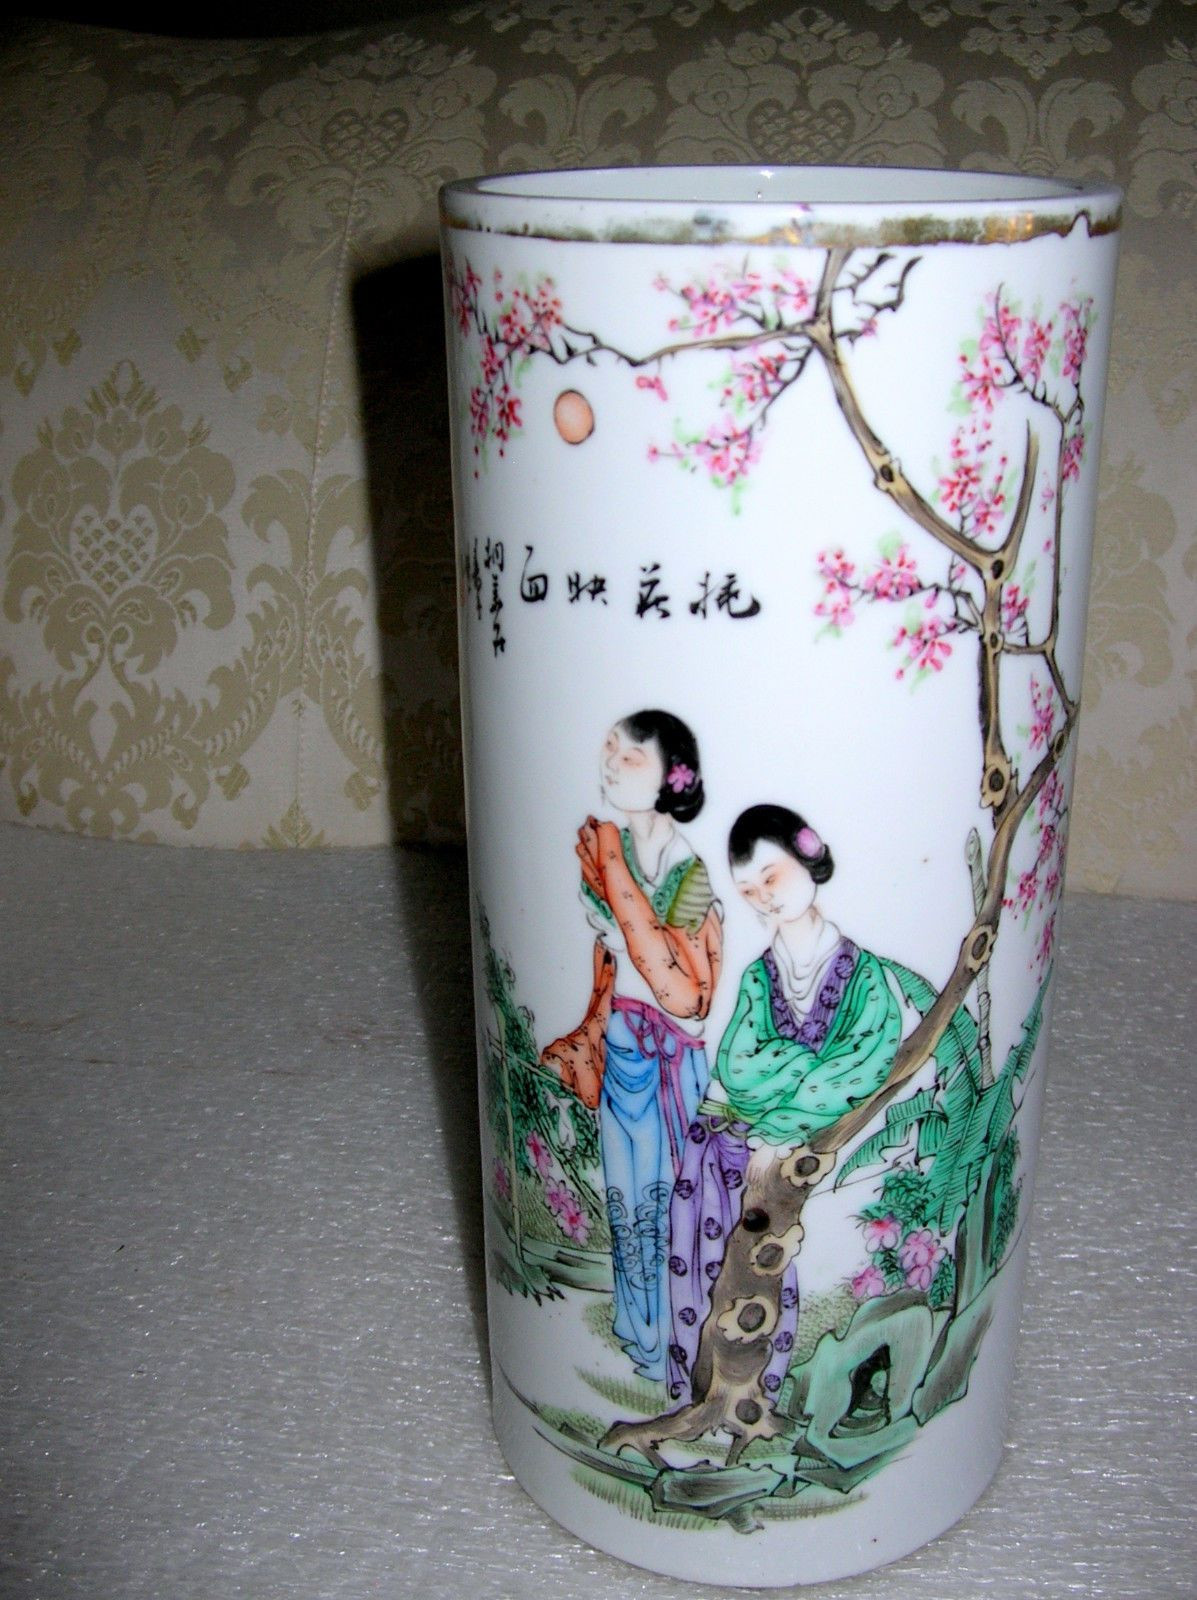 chinese vase stand of rudesheim rh drosselgasse qualitat 5 l german beer stein within 19th century antique chinese famille rose hat stand vase republic period